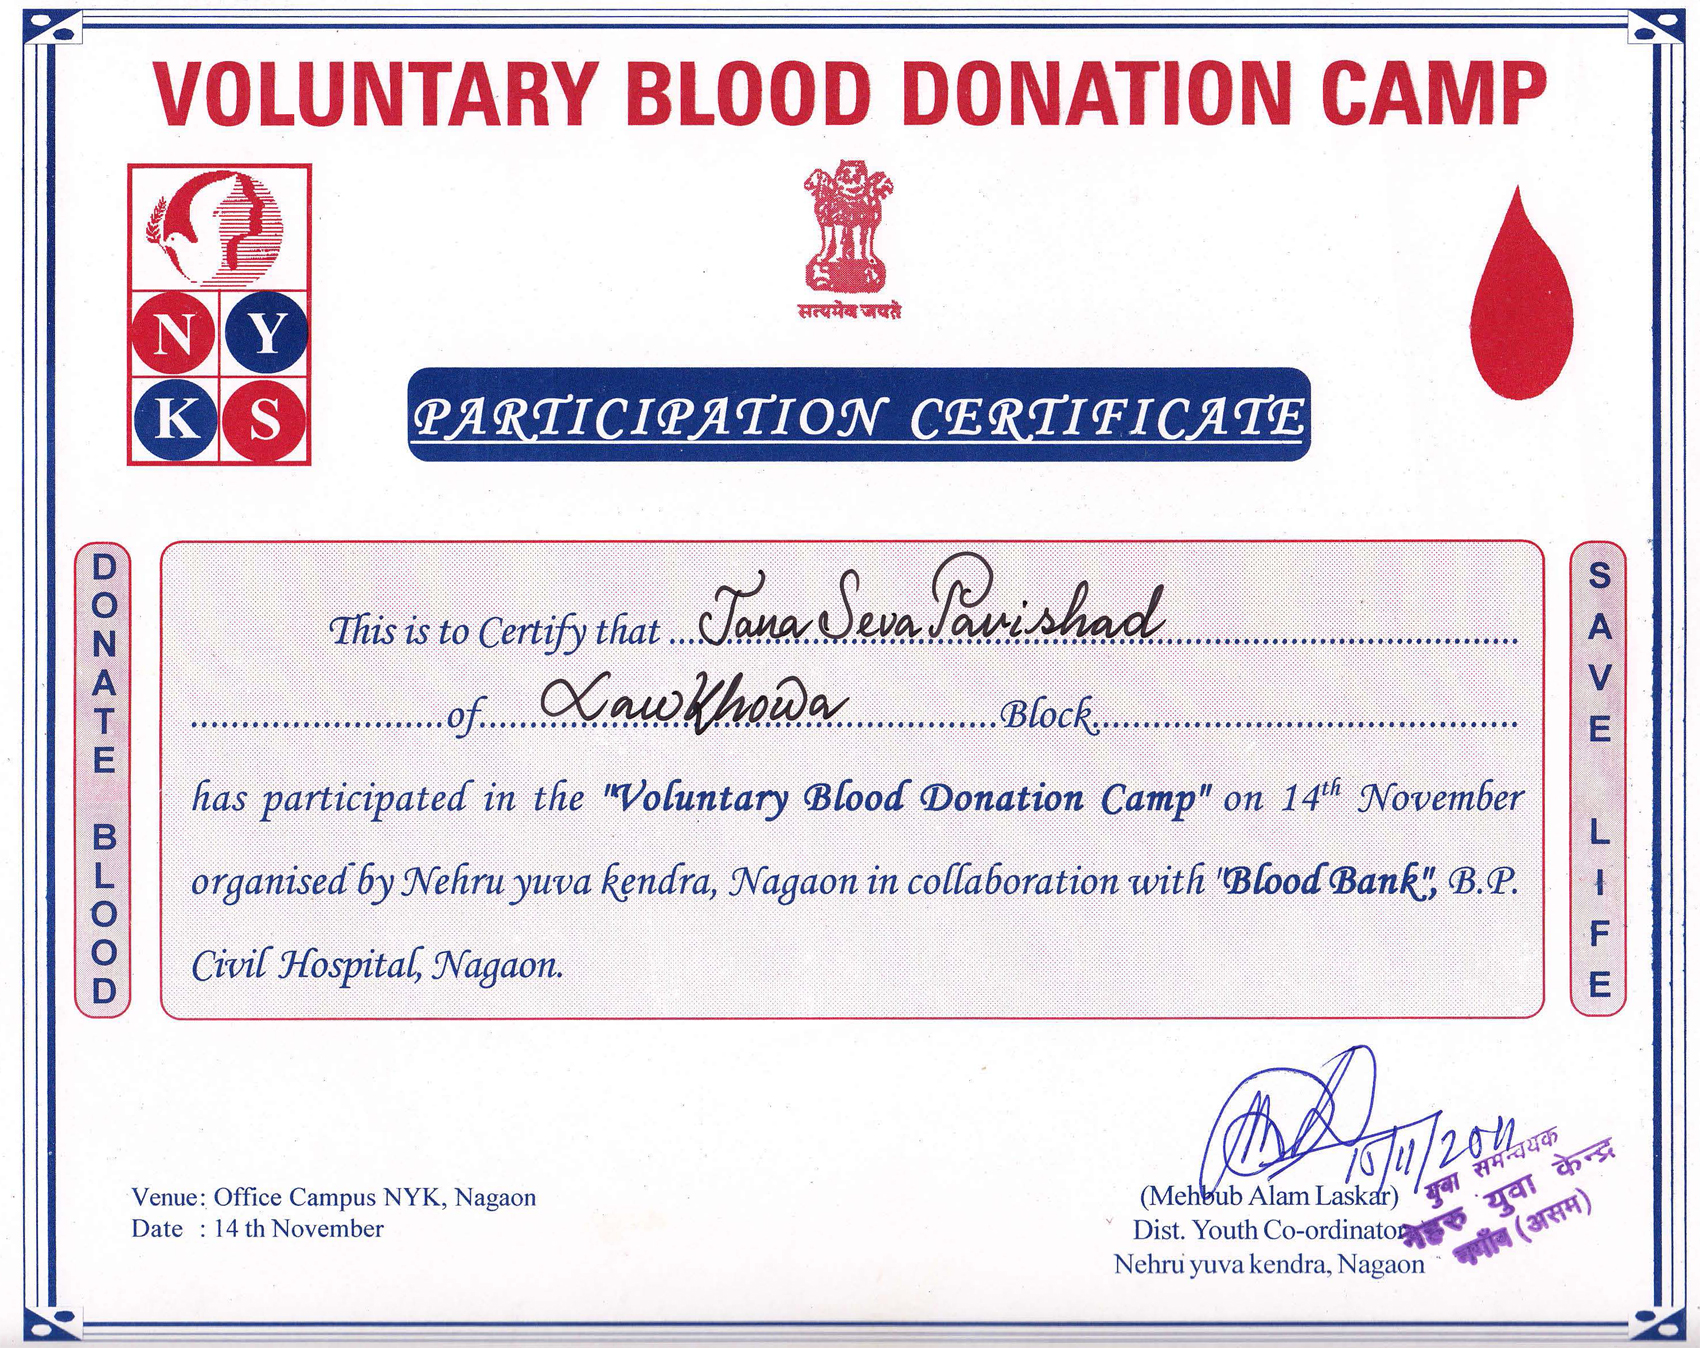 Blood donation certificate akbaeenw blood donation certificate stopboris Choice Image